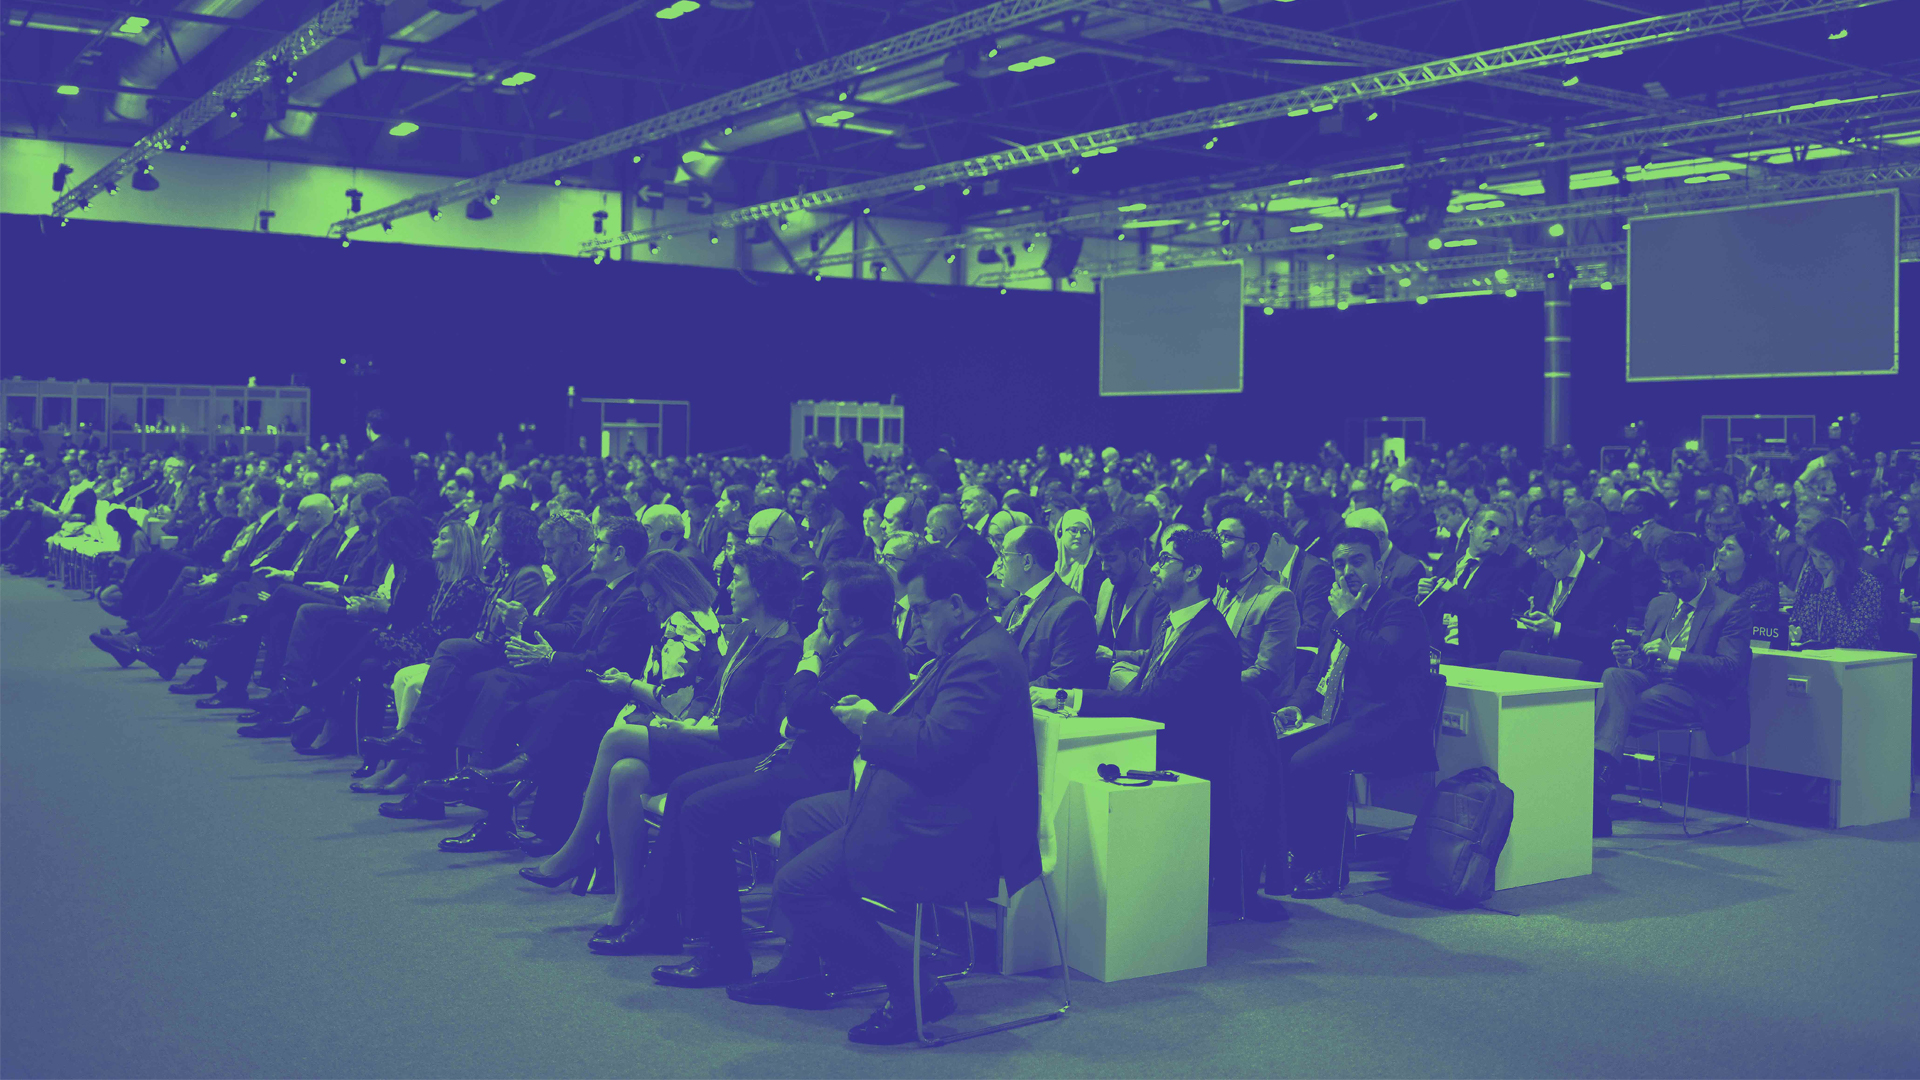 A photograph of an audience sitting at a conference, colourised in green and blue